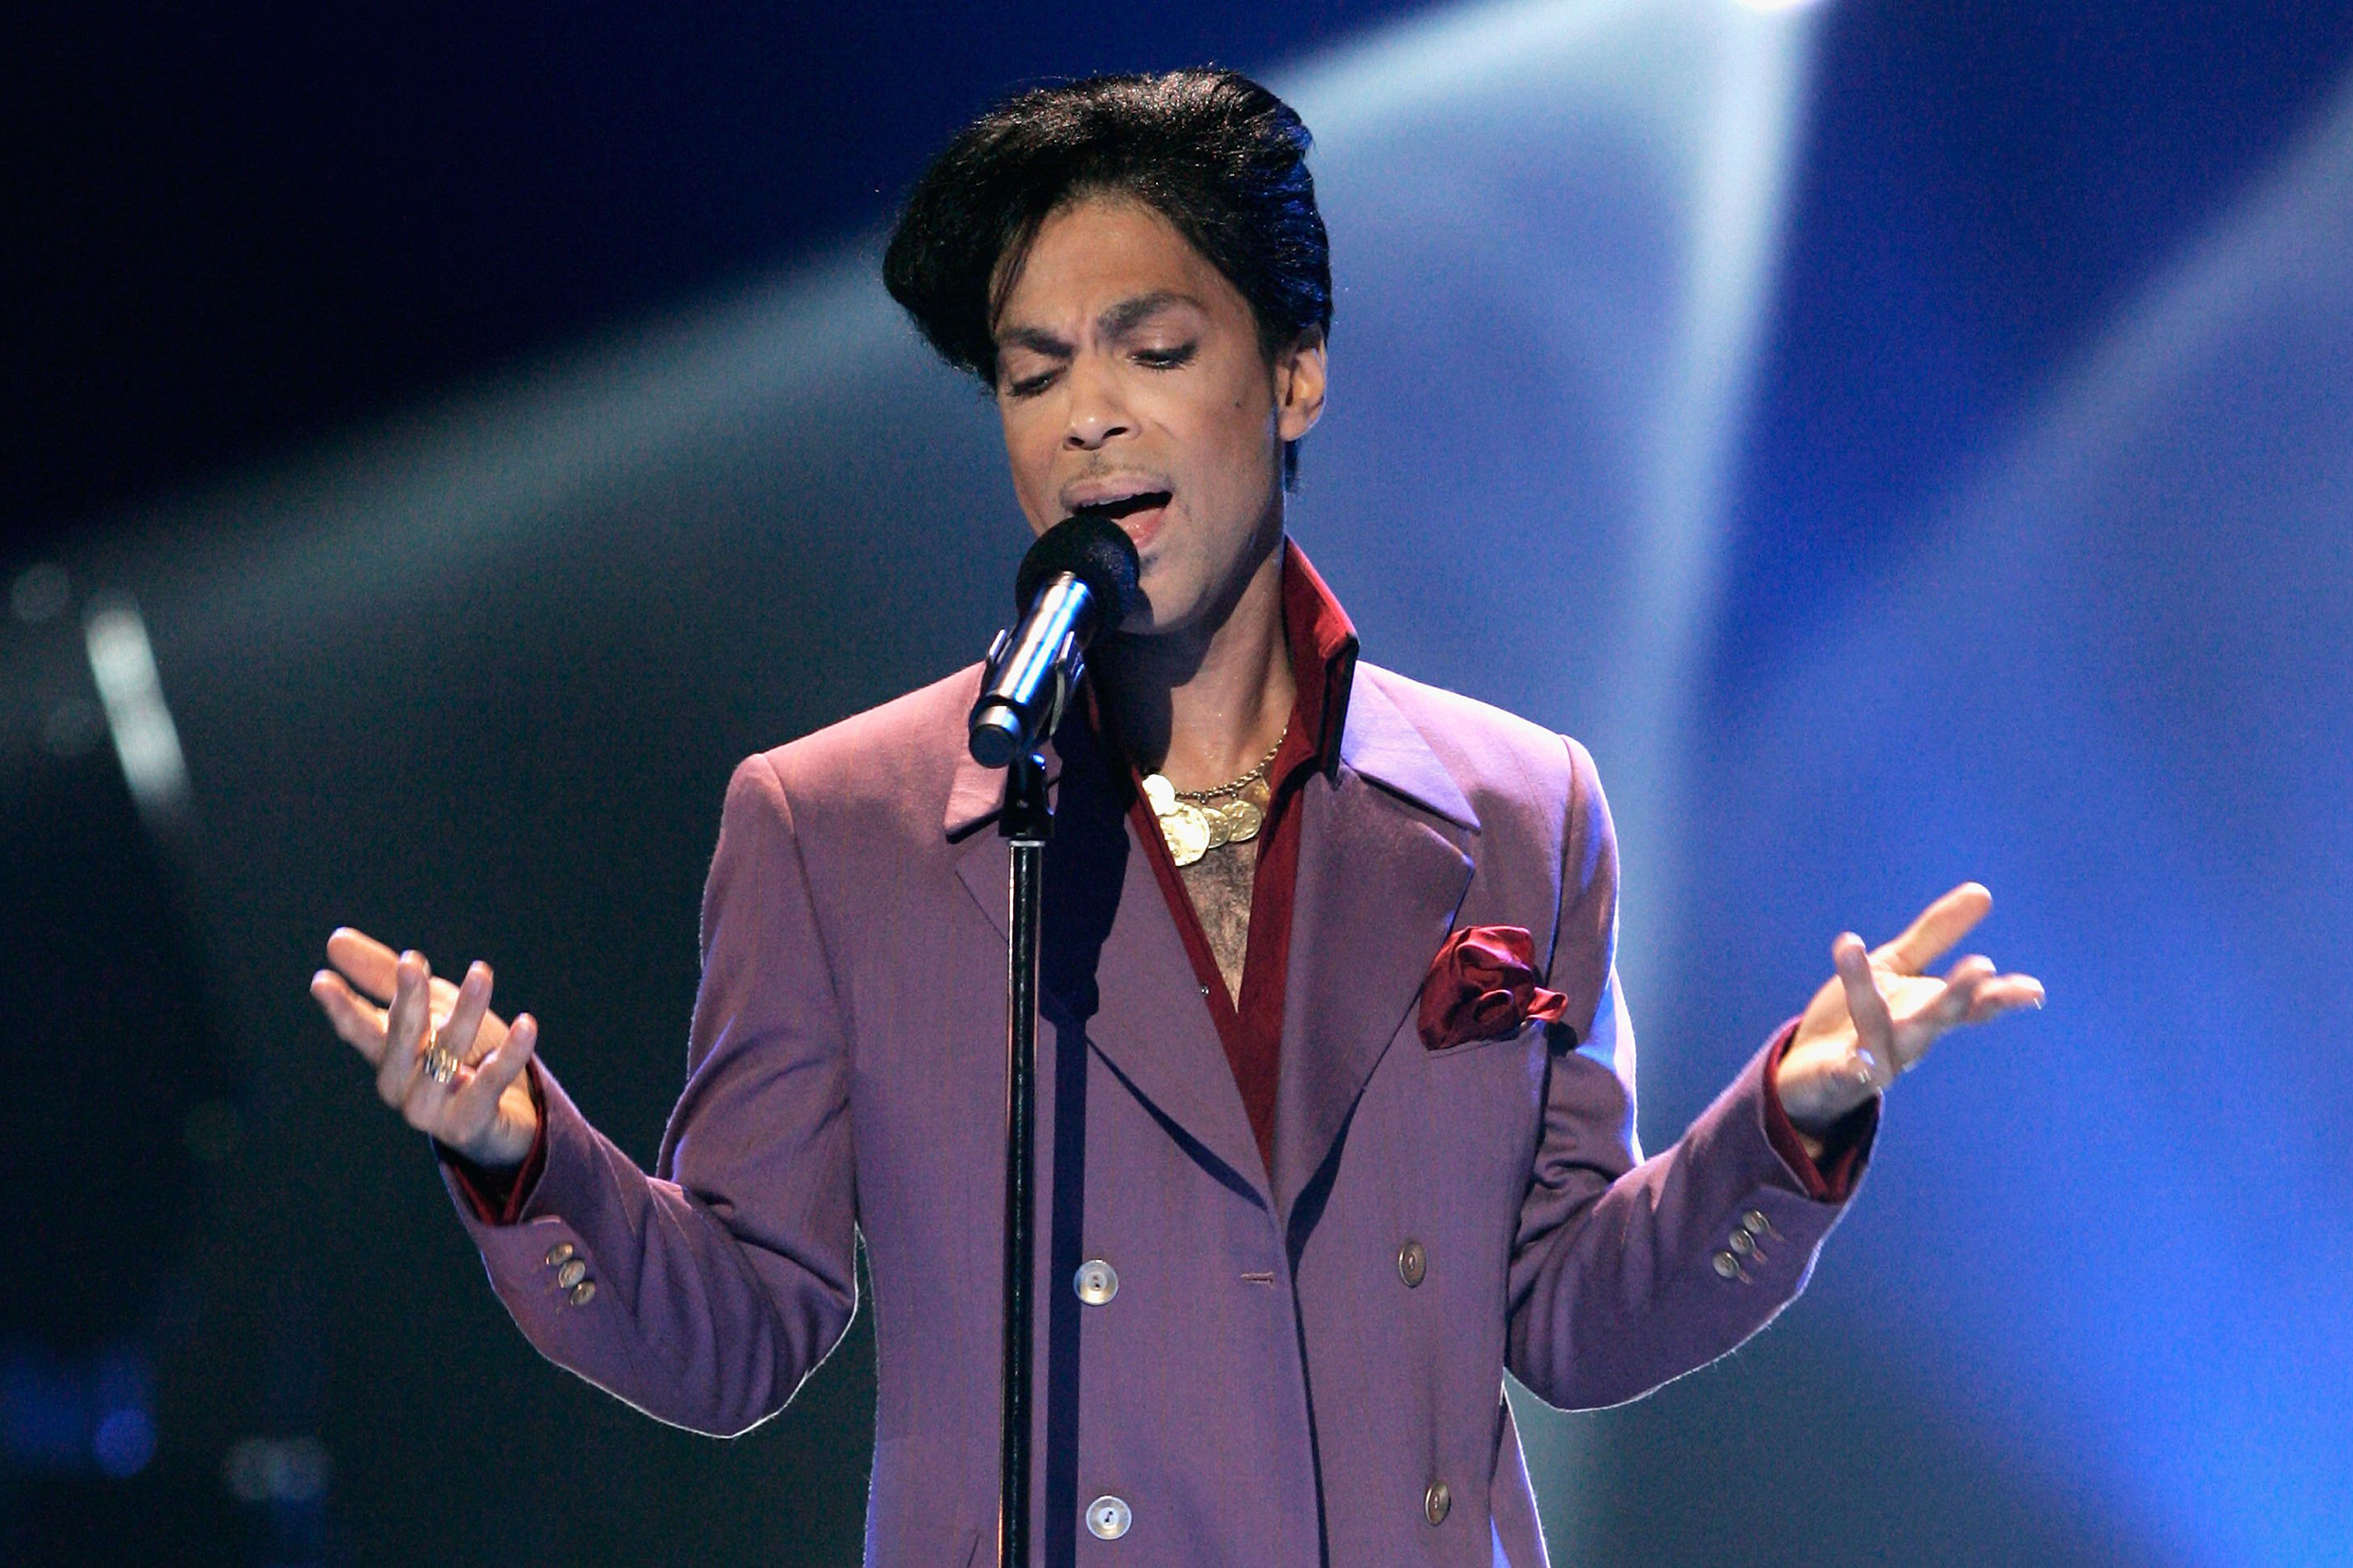 Prince performs onstage during the American Idol Season 5 Finale at the Kodak Theatre in Hollywood, California, on on May 24, 2006.